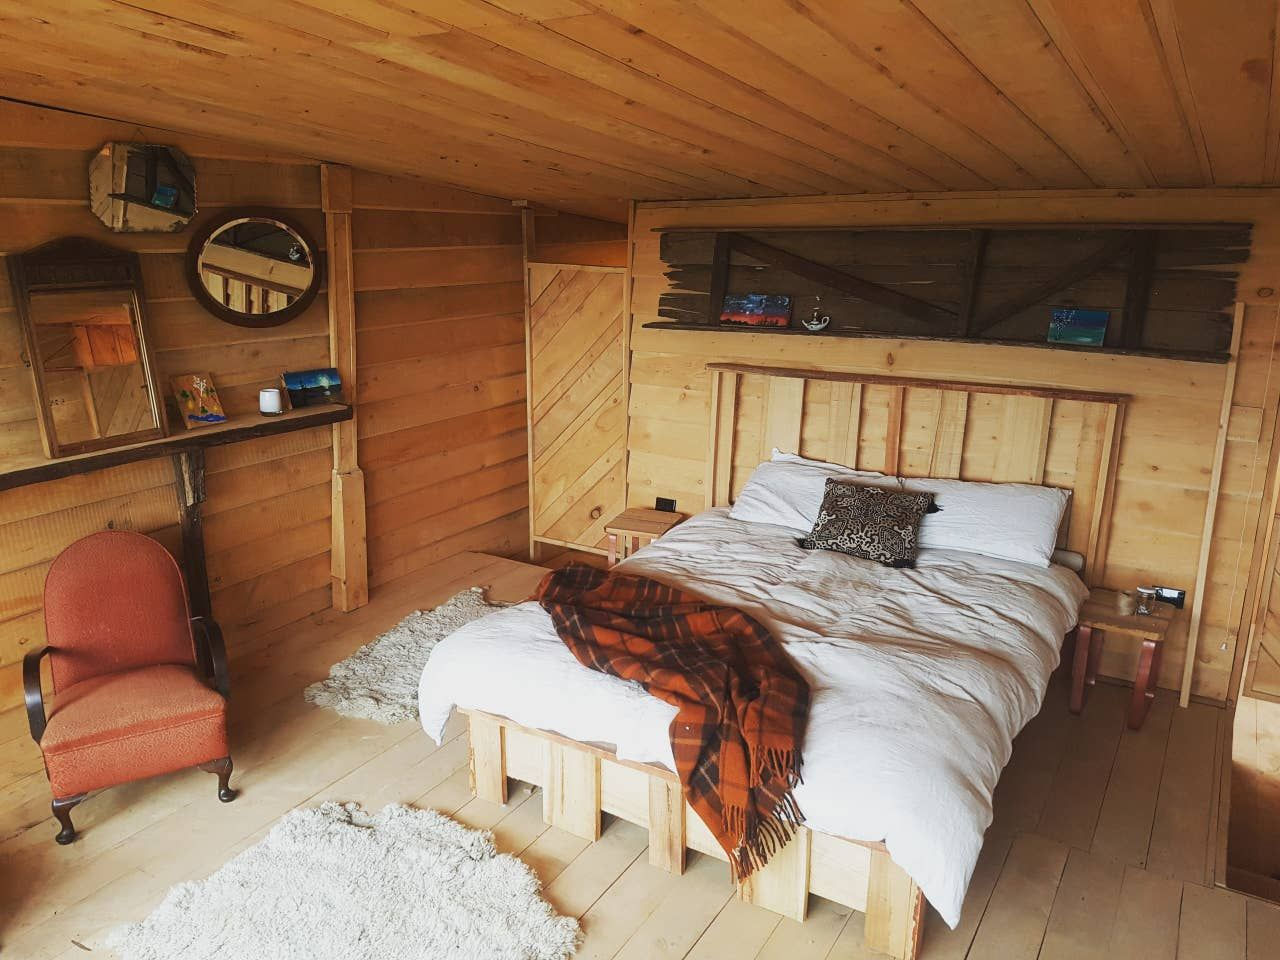 Example of living in a rustic shed